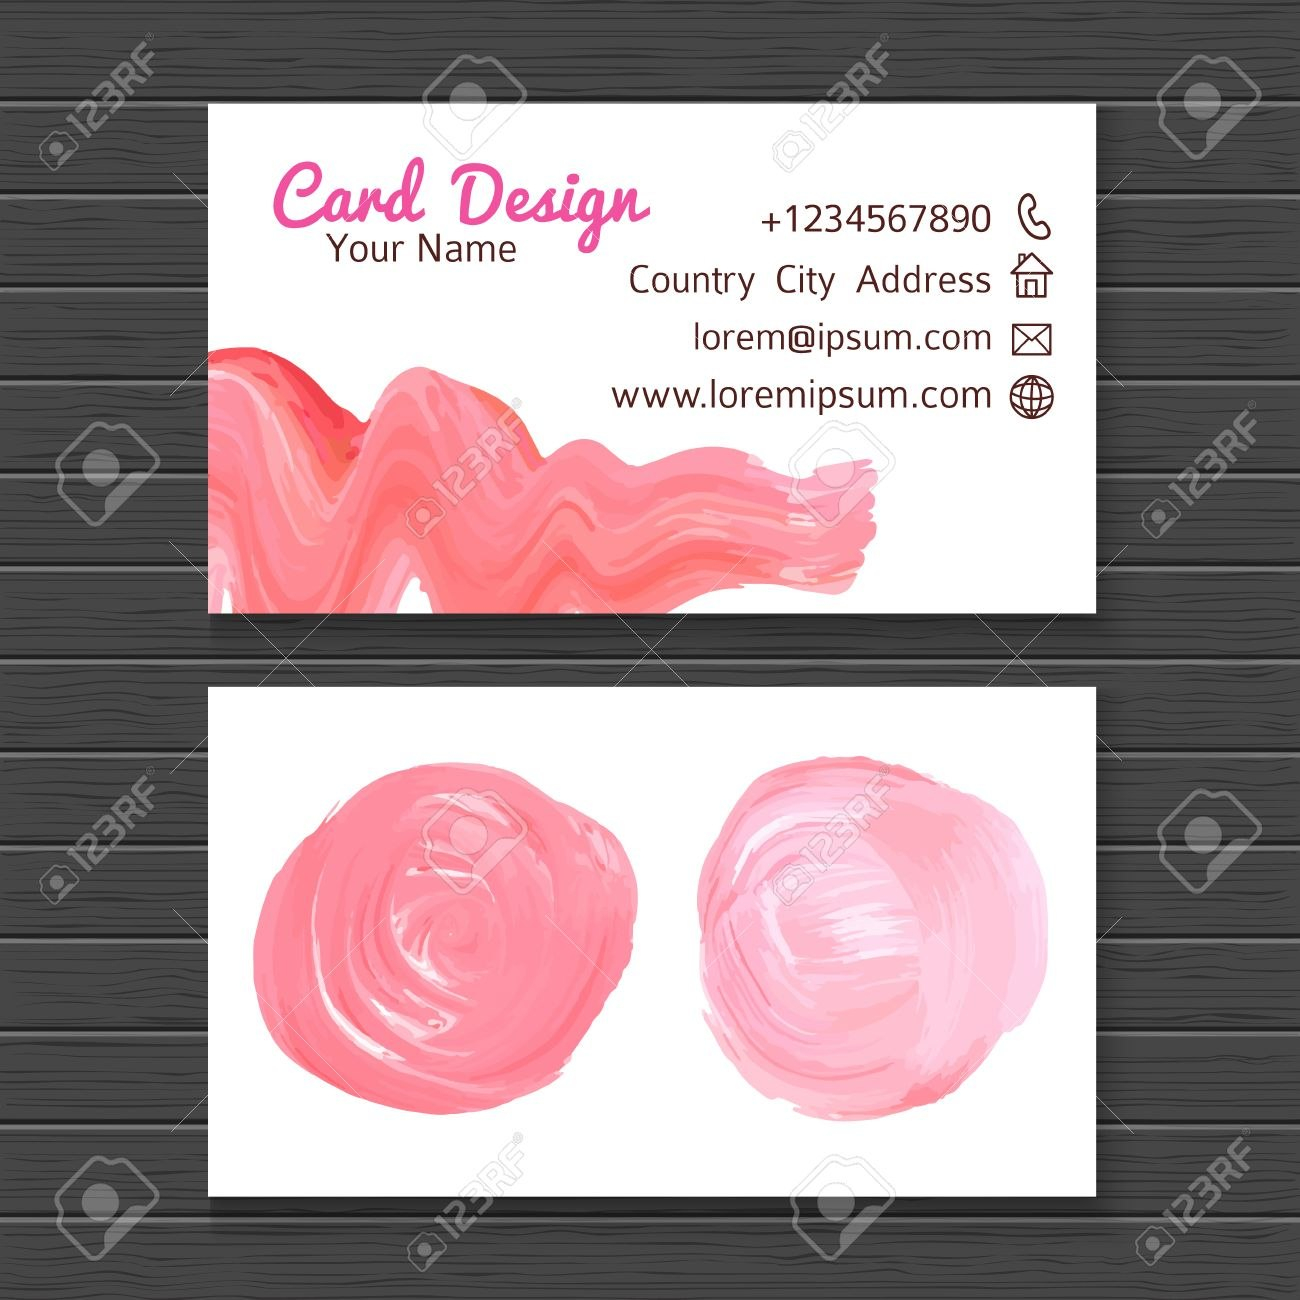 Hand Drawn Watercolor Business Card Template With Pink Lipstick Throughout Cake Business Cards Templates Free